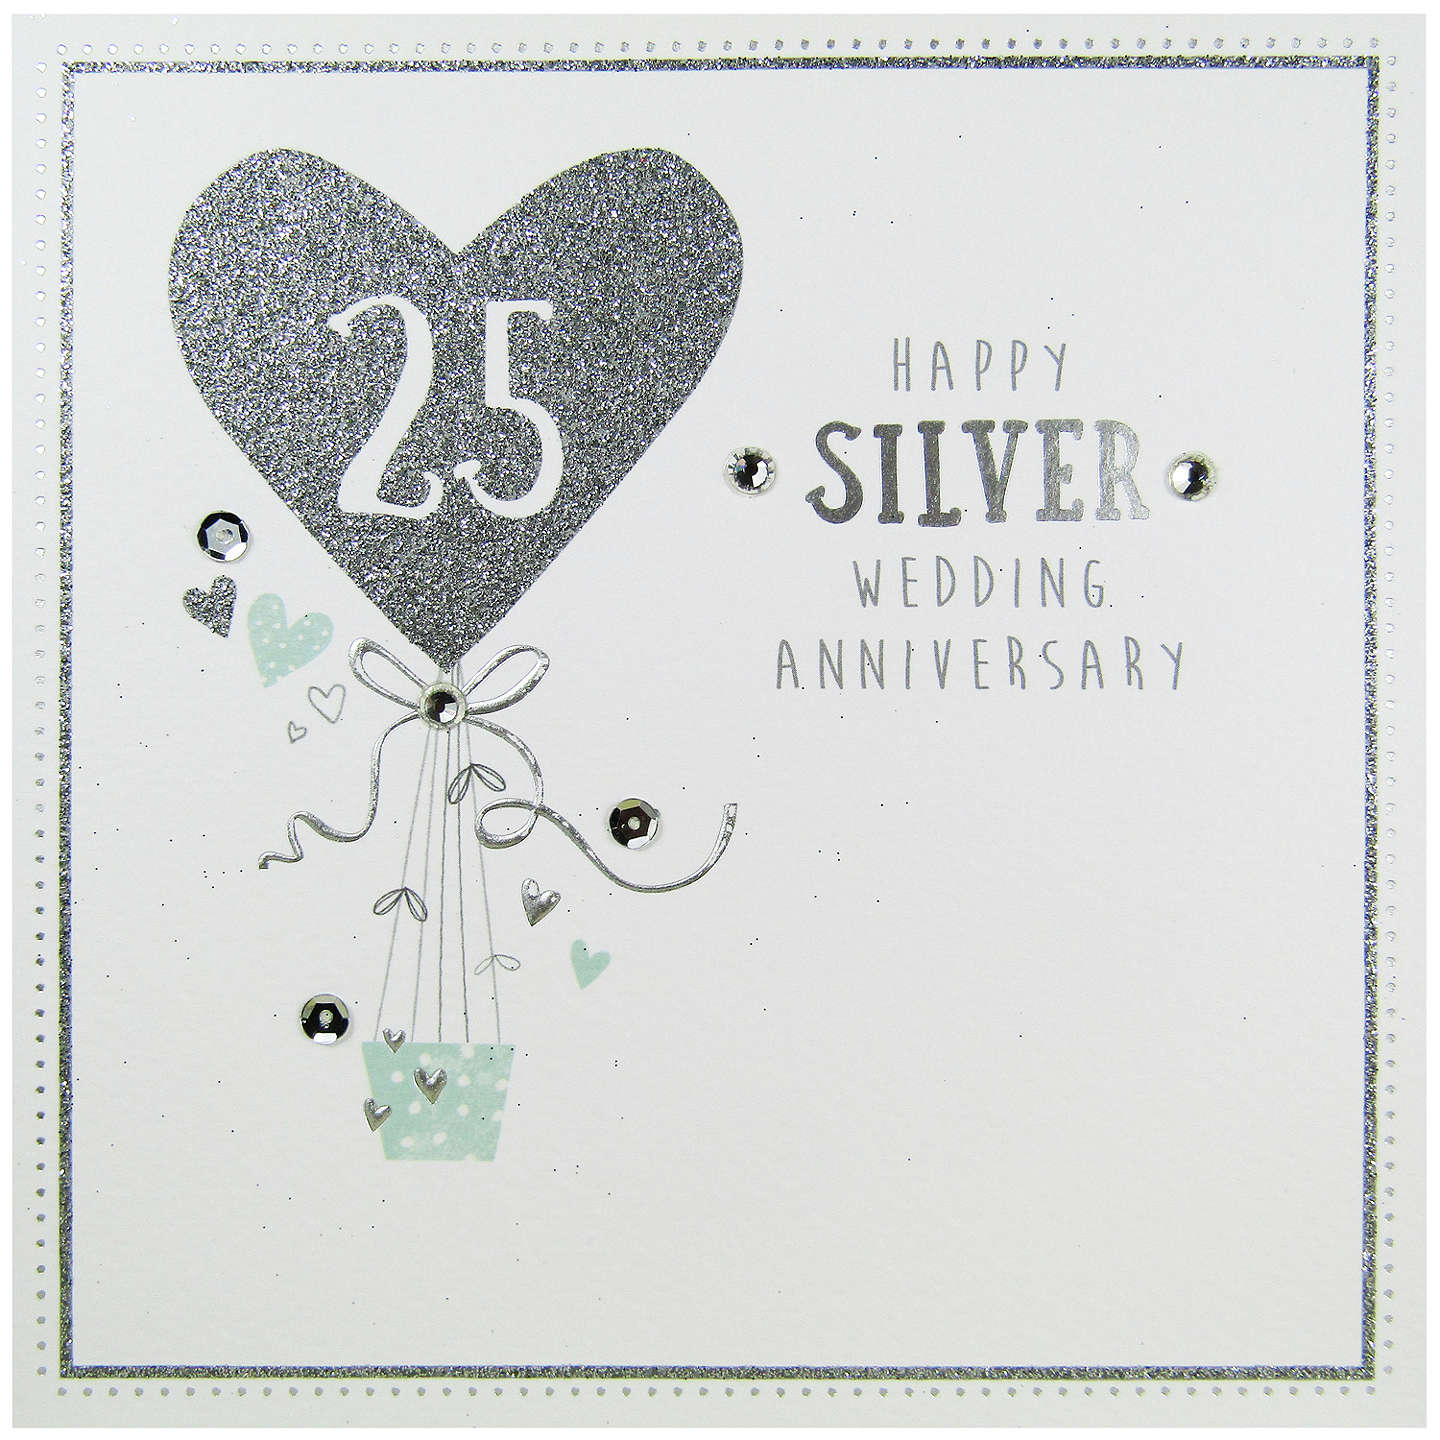 Carte blanche silver anniversary greeting card at john lewis buycarte blanche silver anniversary greeting card online at johnlewis m4hsunfo